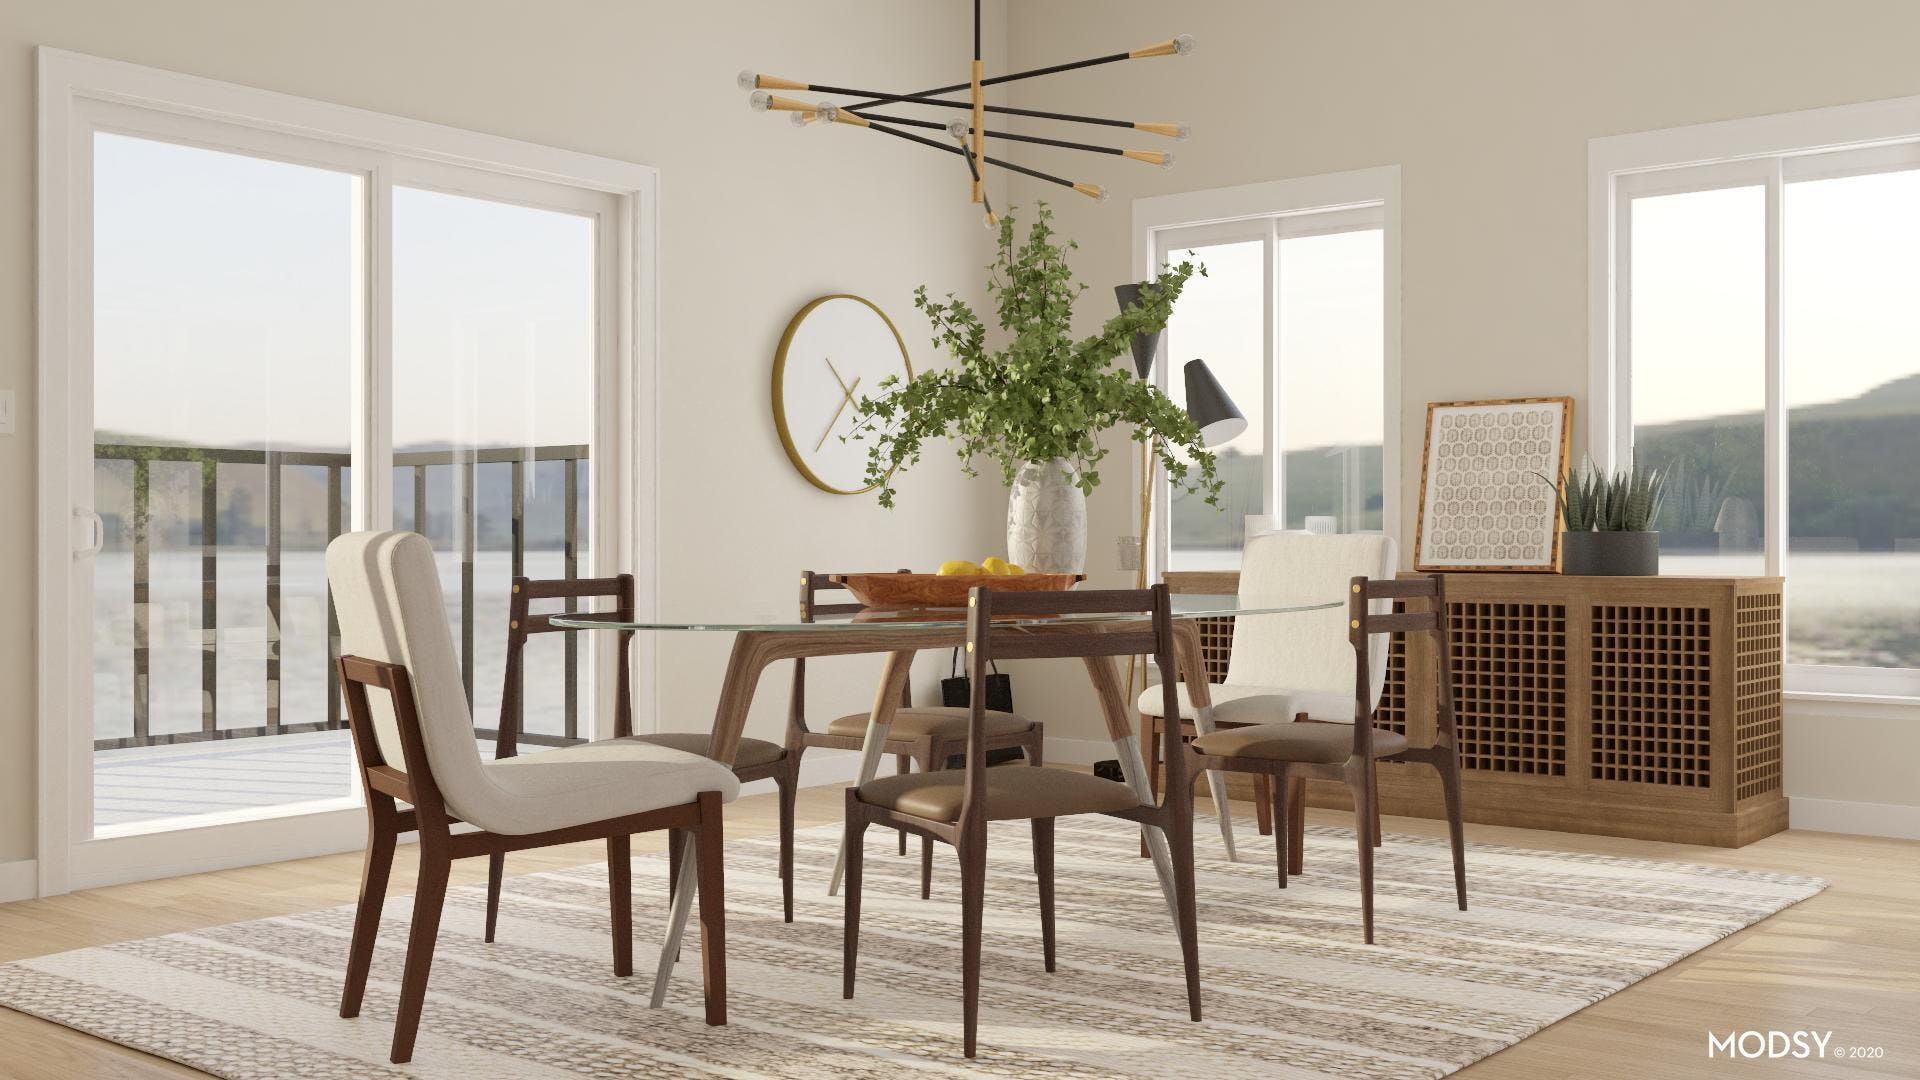 Neutral Tone For A Modern Dining Room